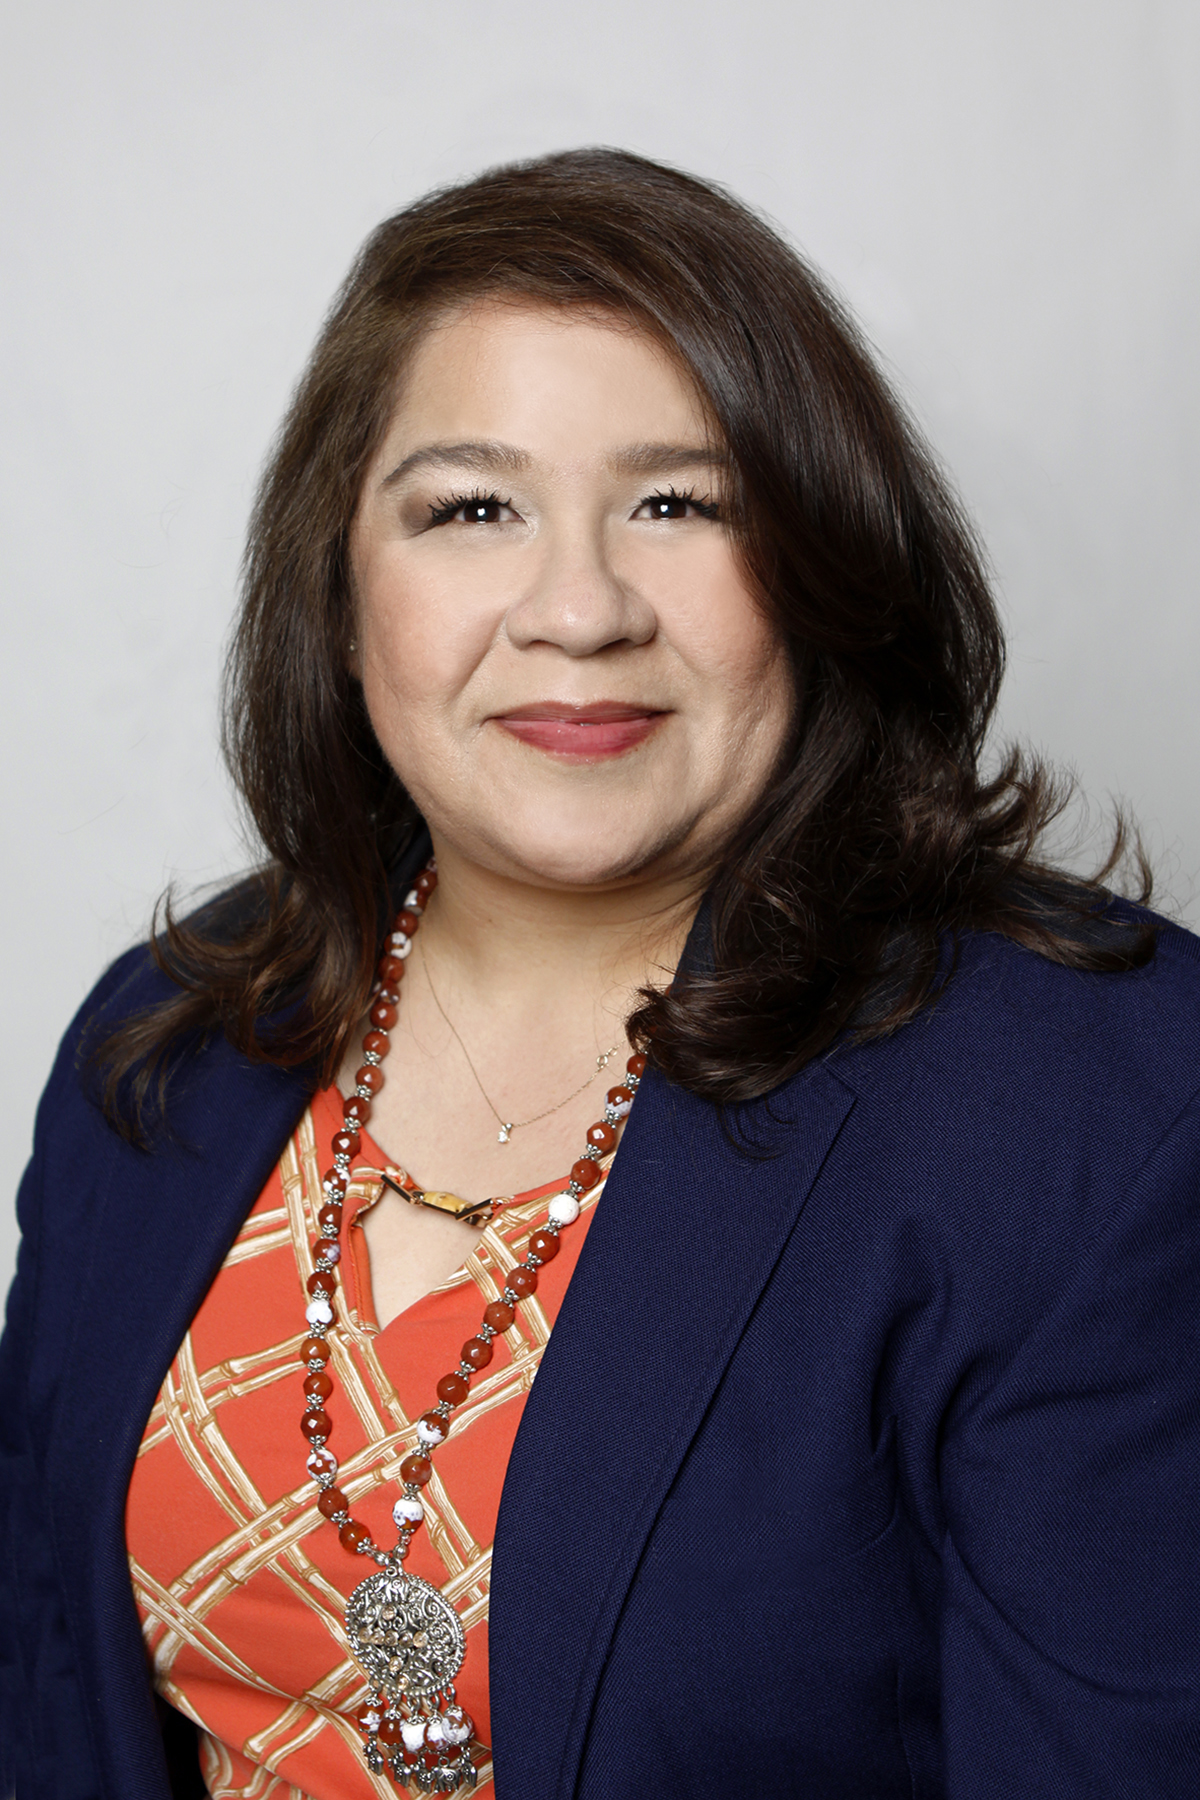 Liliana Barrios